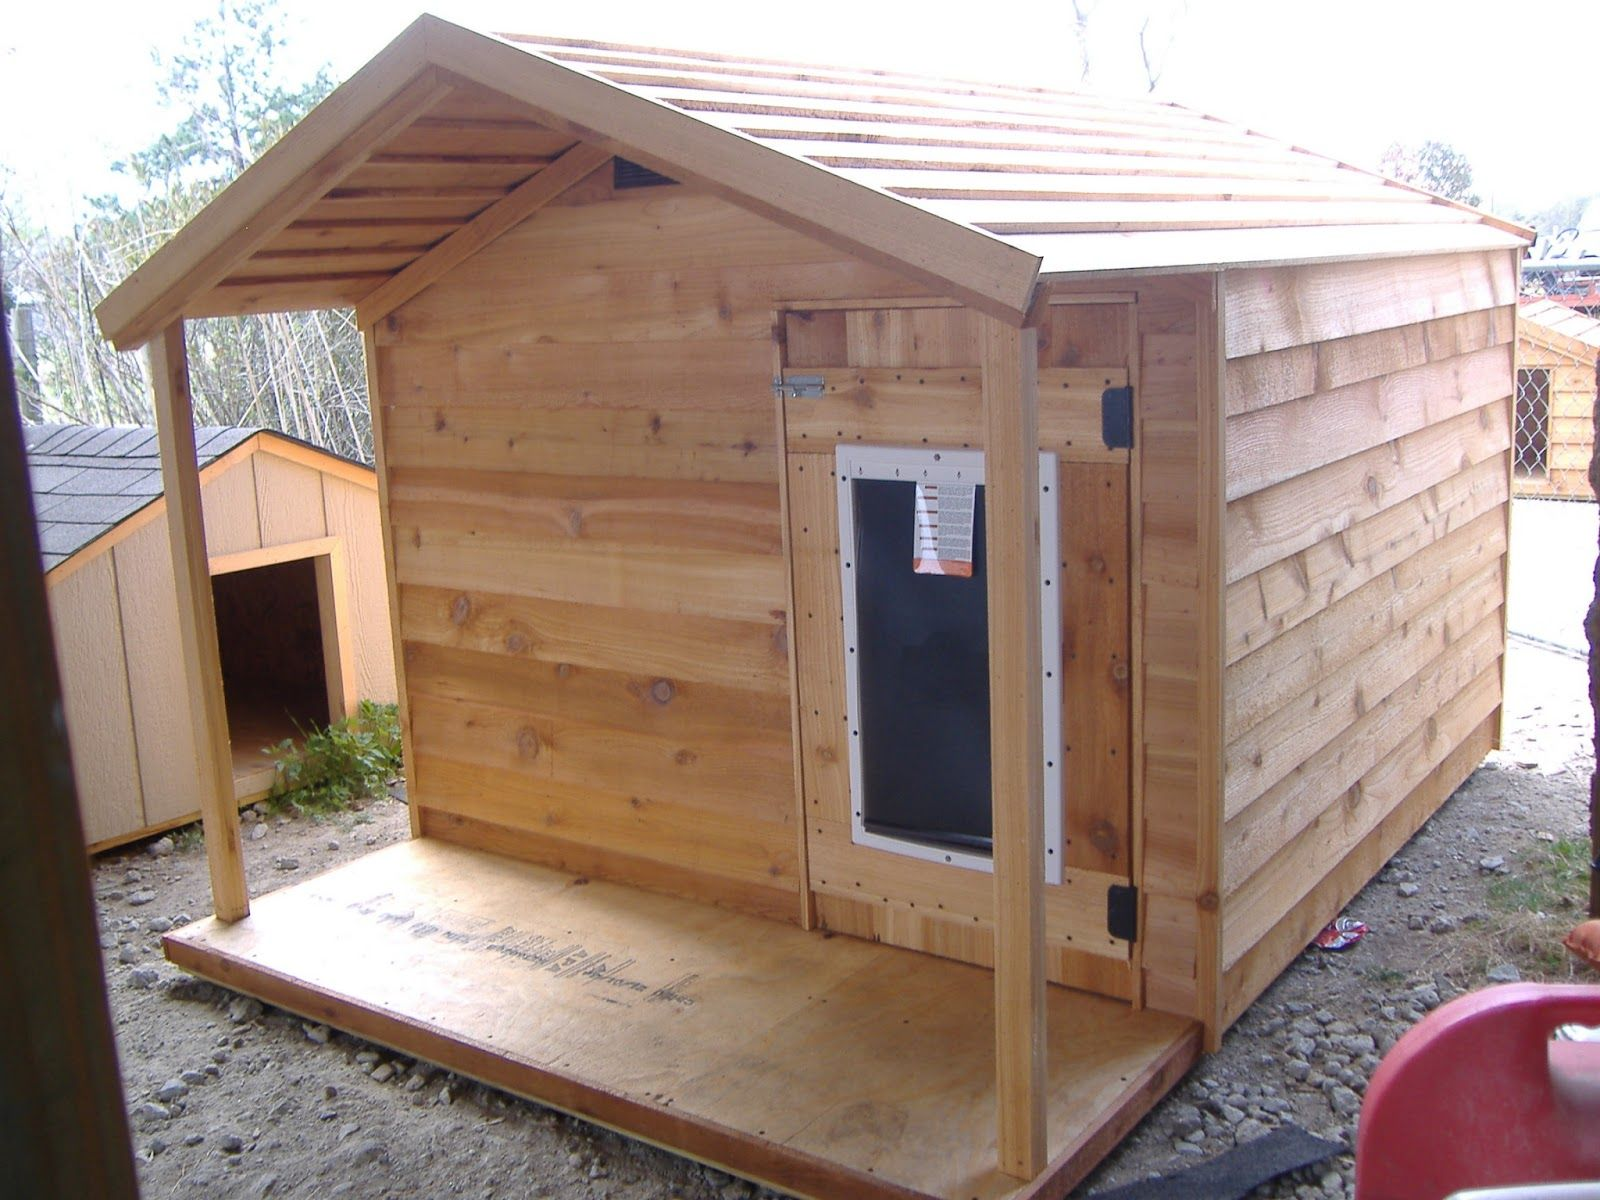 Insulated Dog Houses For Winter Best 25 Insulated Dog Houses Ideas On Pinterest